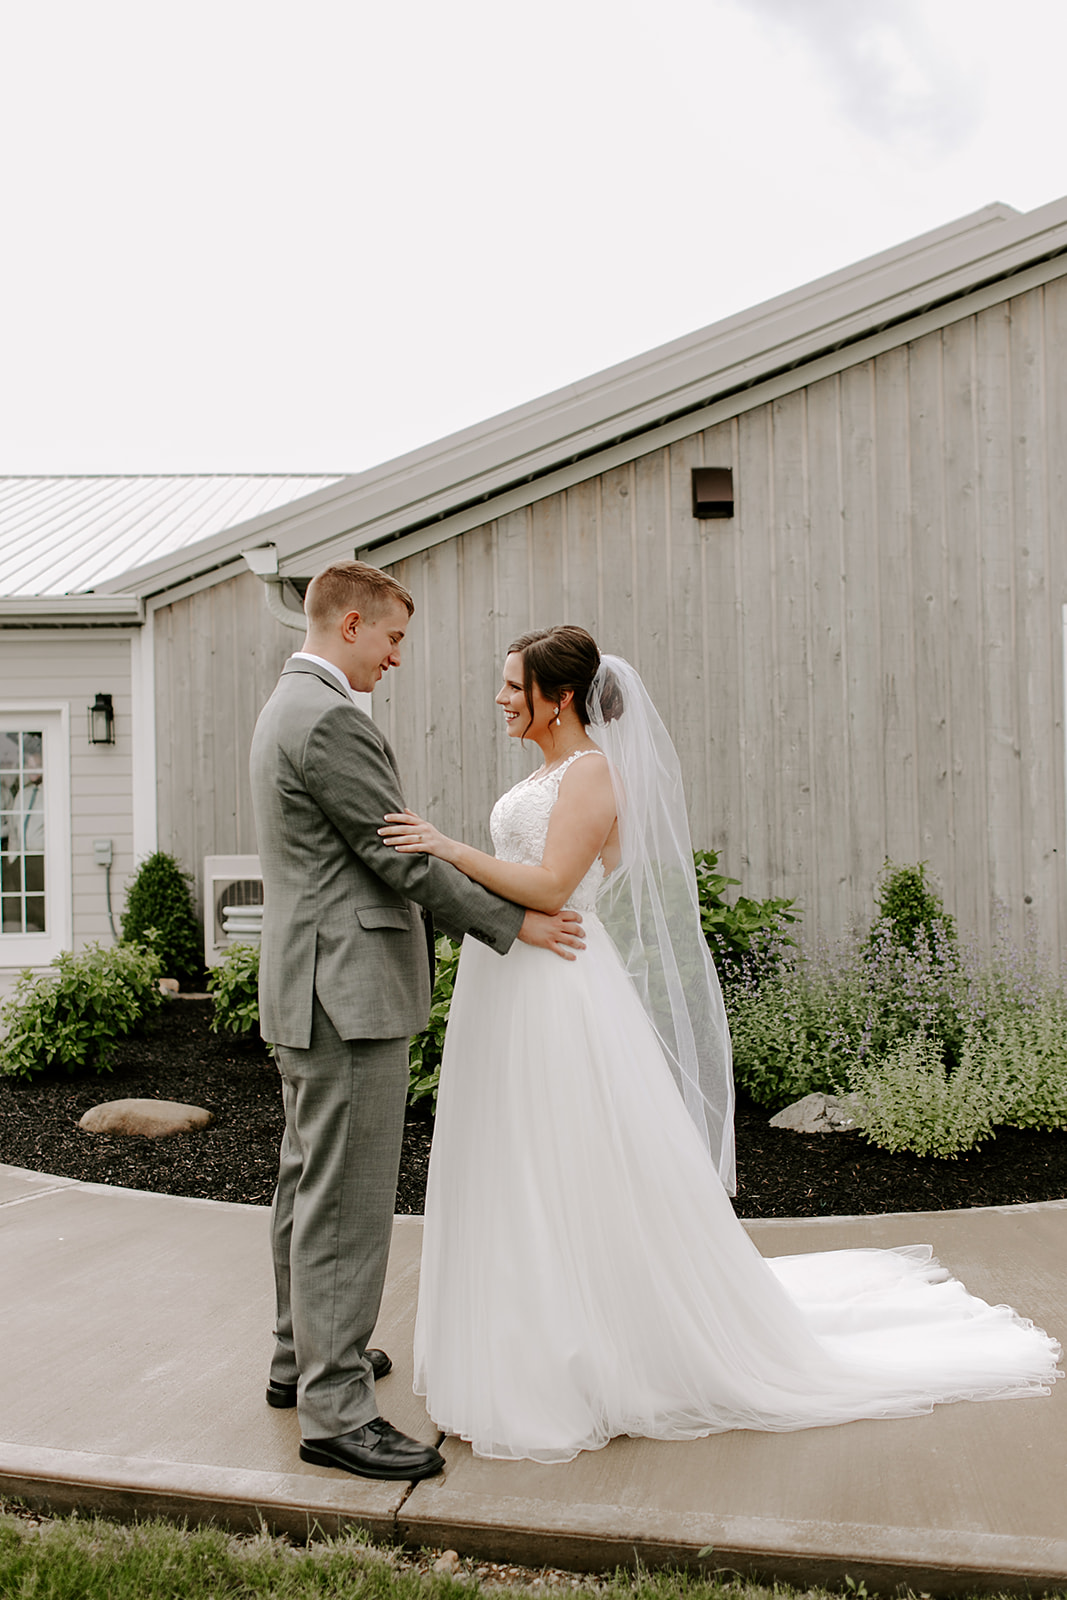 Kendra_and_Mattew_Indiana_Wedding_by_Emily_Wehner-212.jpg